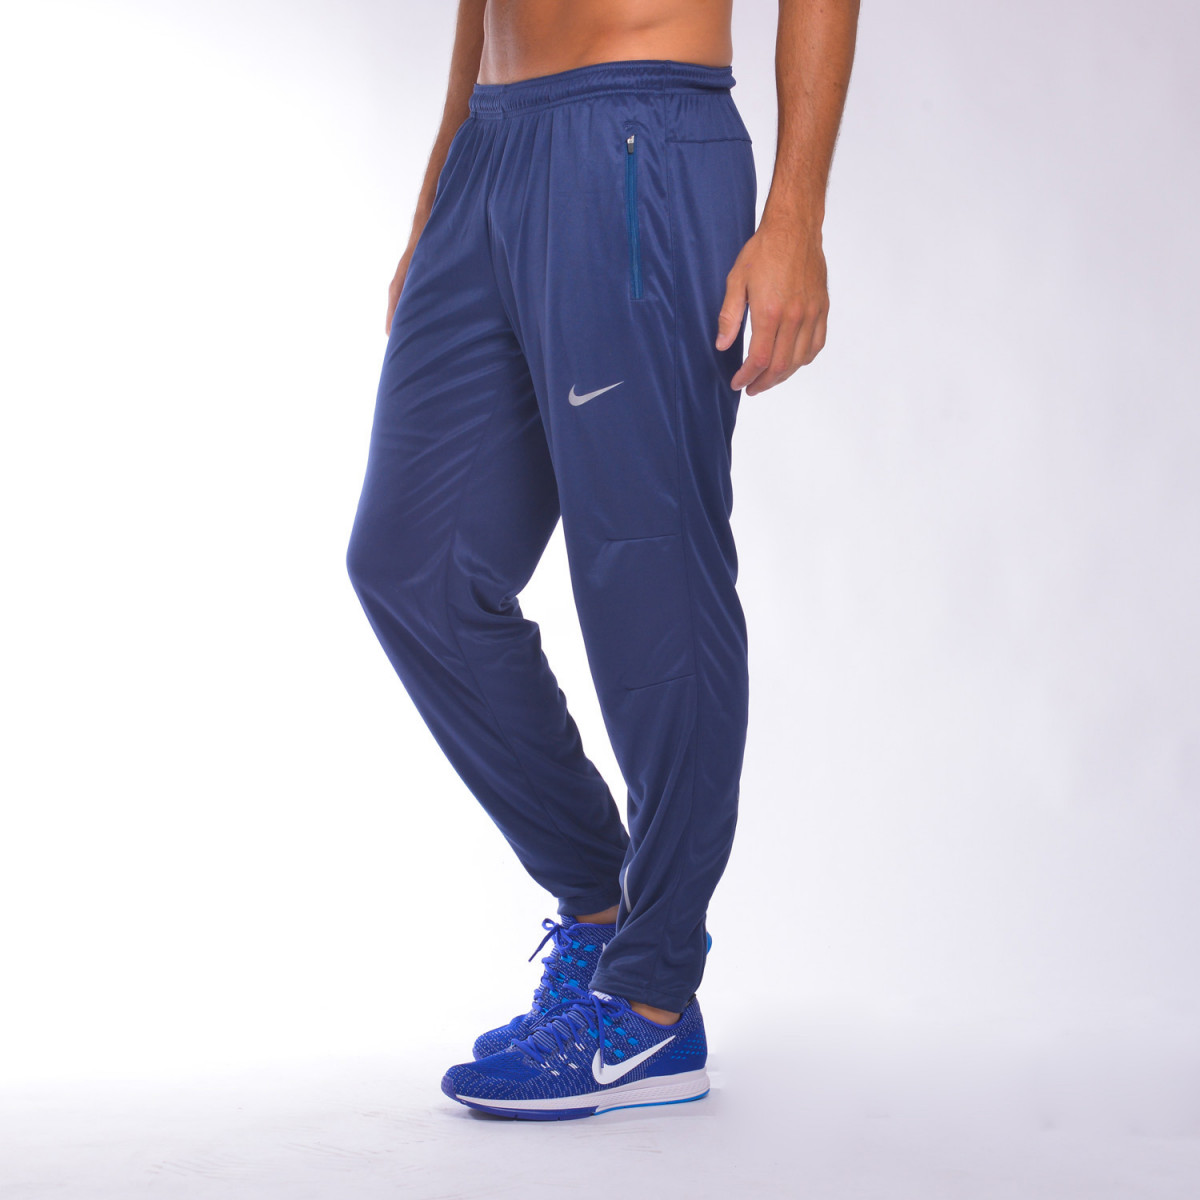 Pantalon Nike Race Knit Track